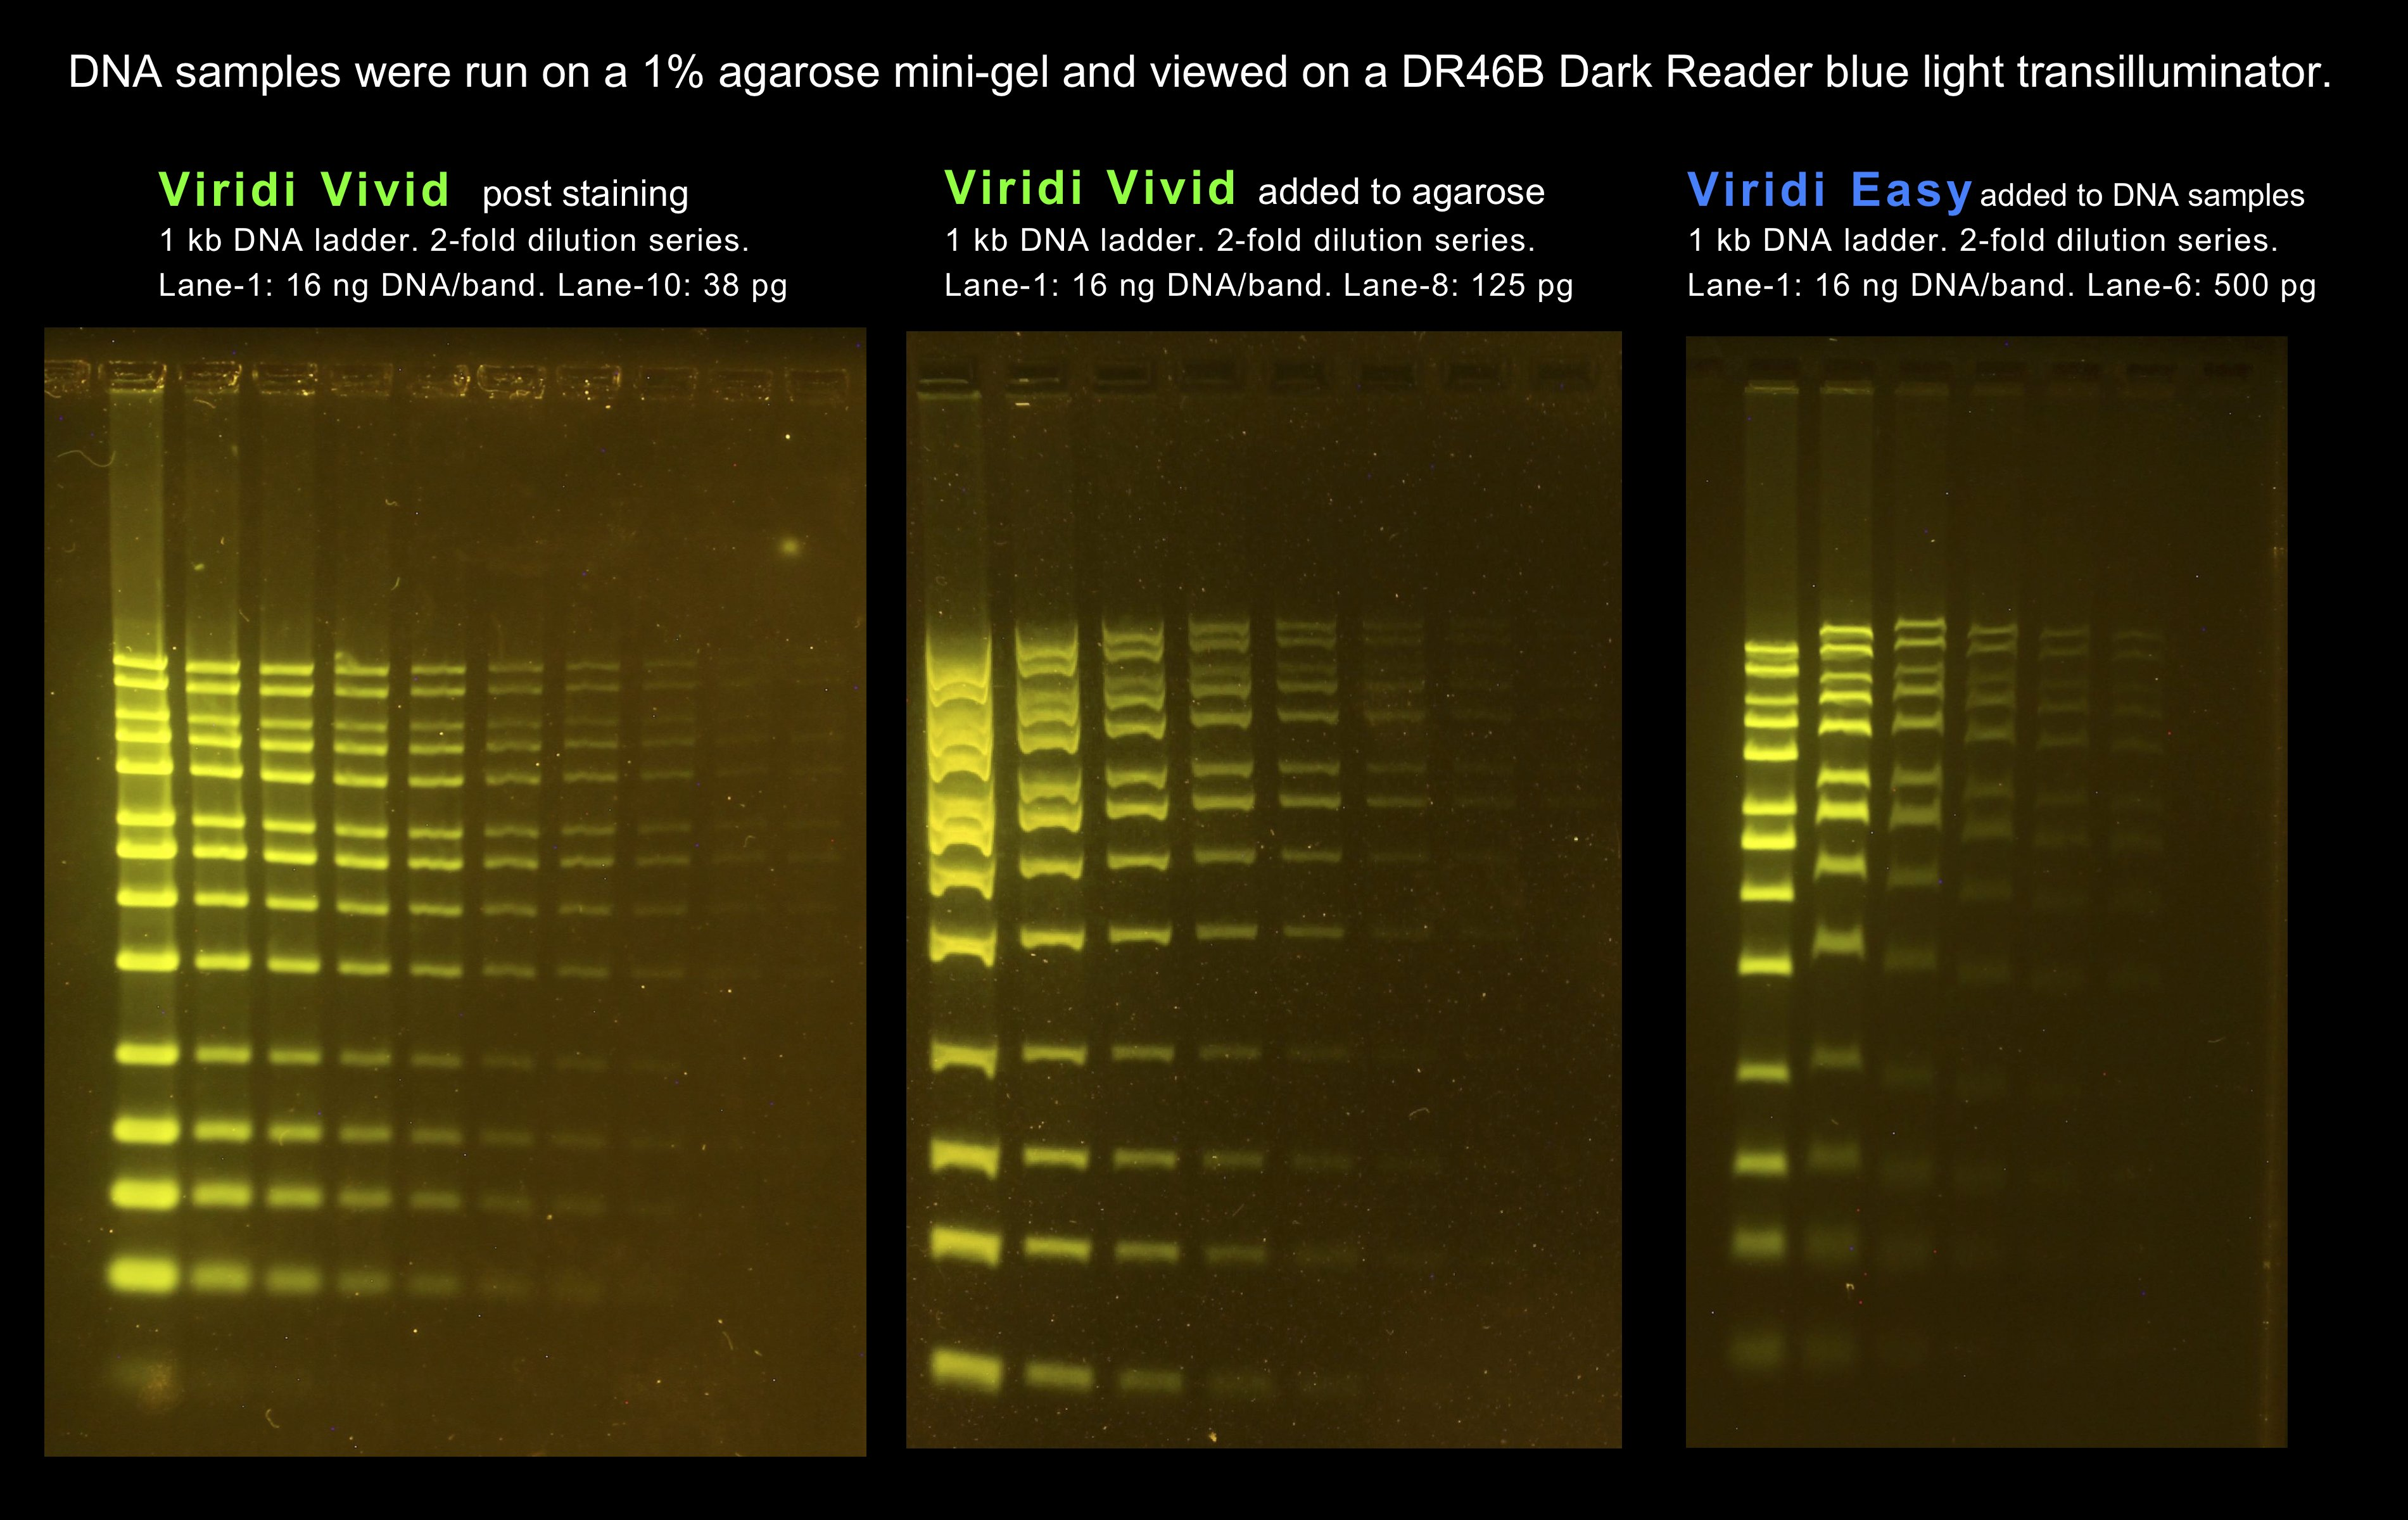 Image of side-by-side gel comparisons of the new Viridi DNA stains